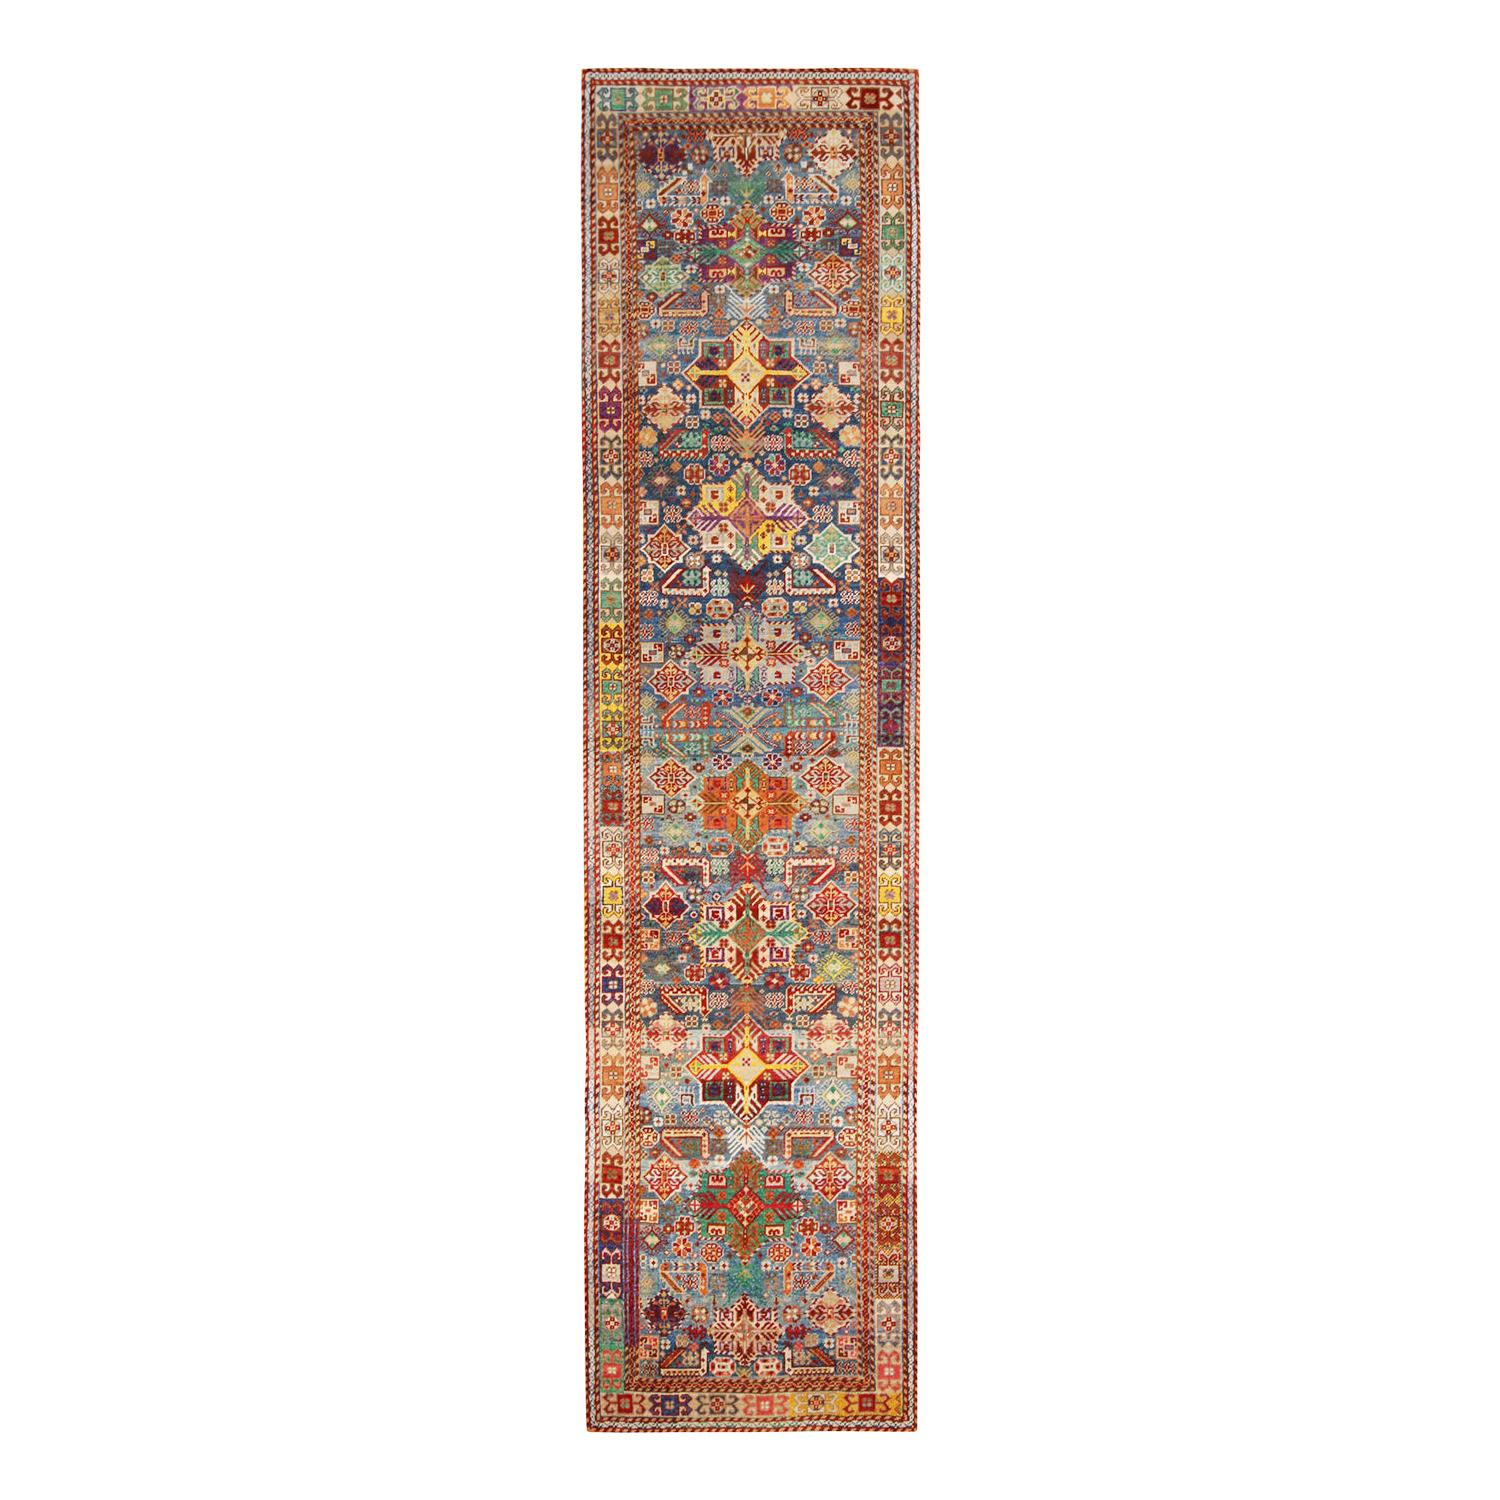 Contemporary Rajasthan Tribal Red And Blue Multi Color Wool Rug